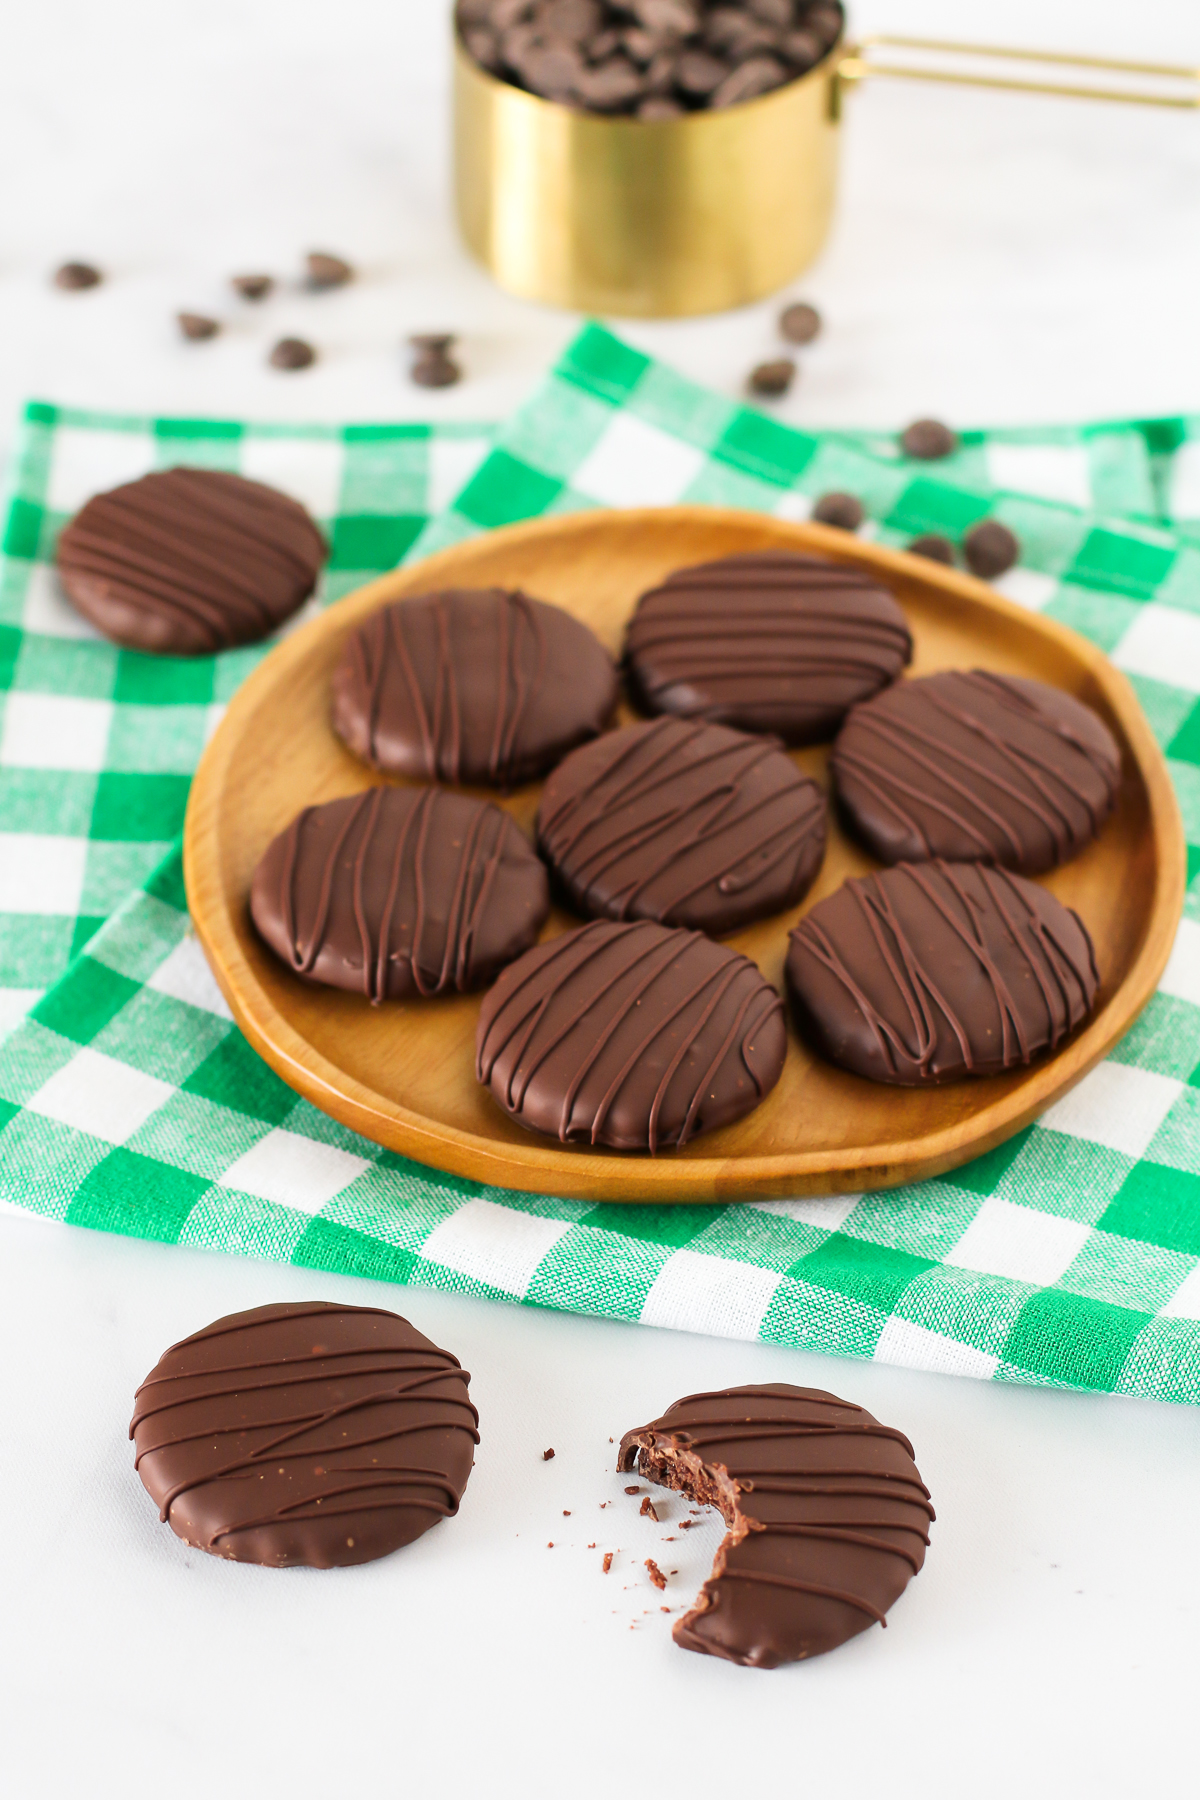 Gluten Free Vegan Thin Mint Cookies. Chocolate-covered crunchy chocolate mint cookies. Just like you remember them!